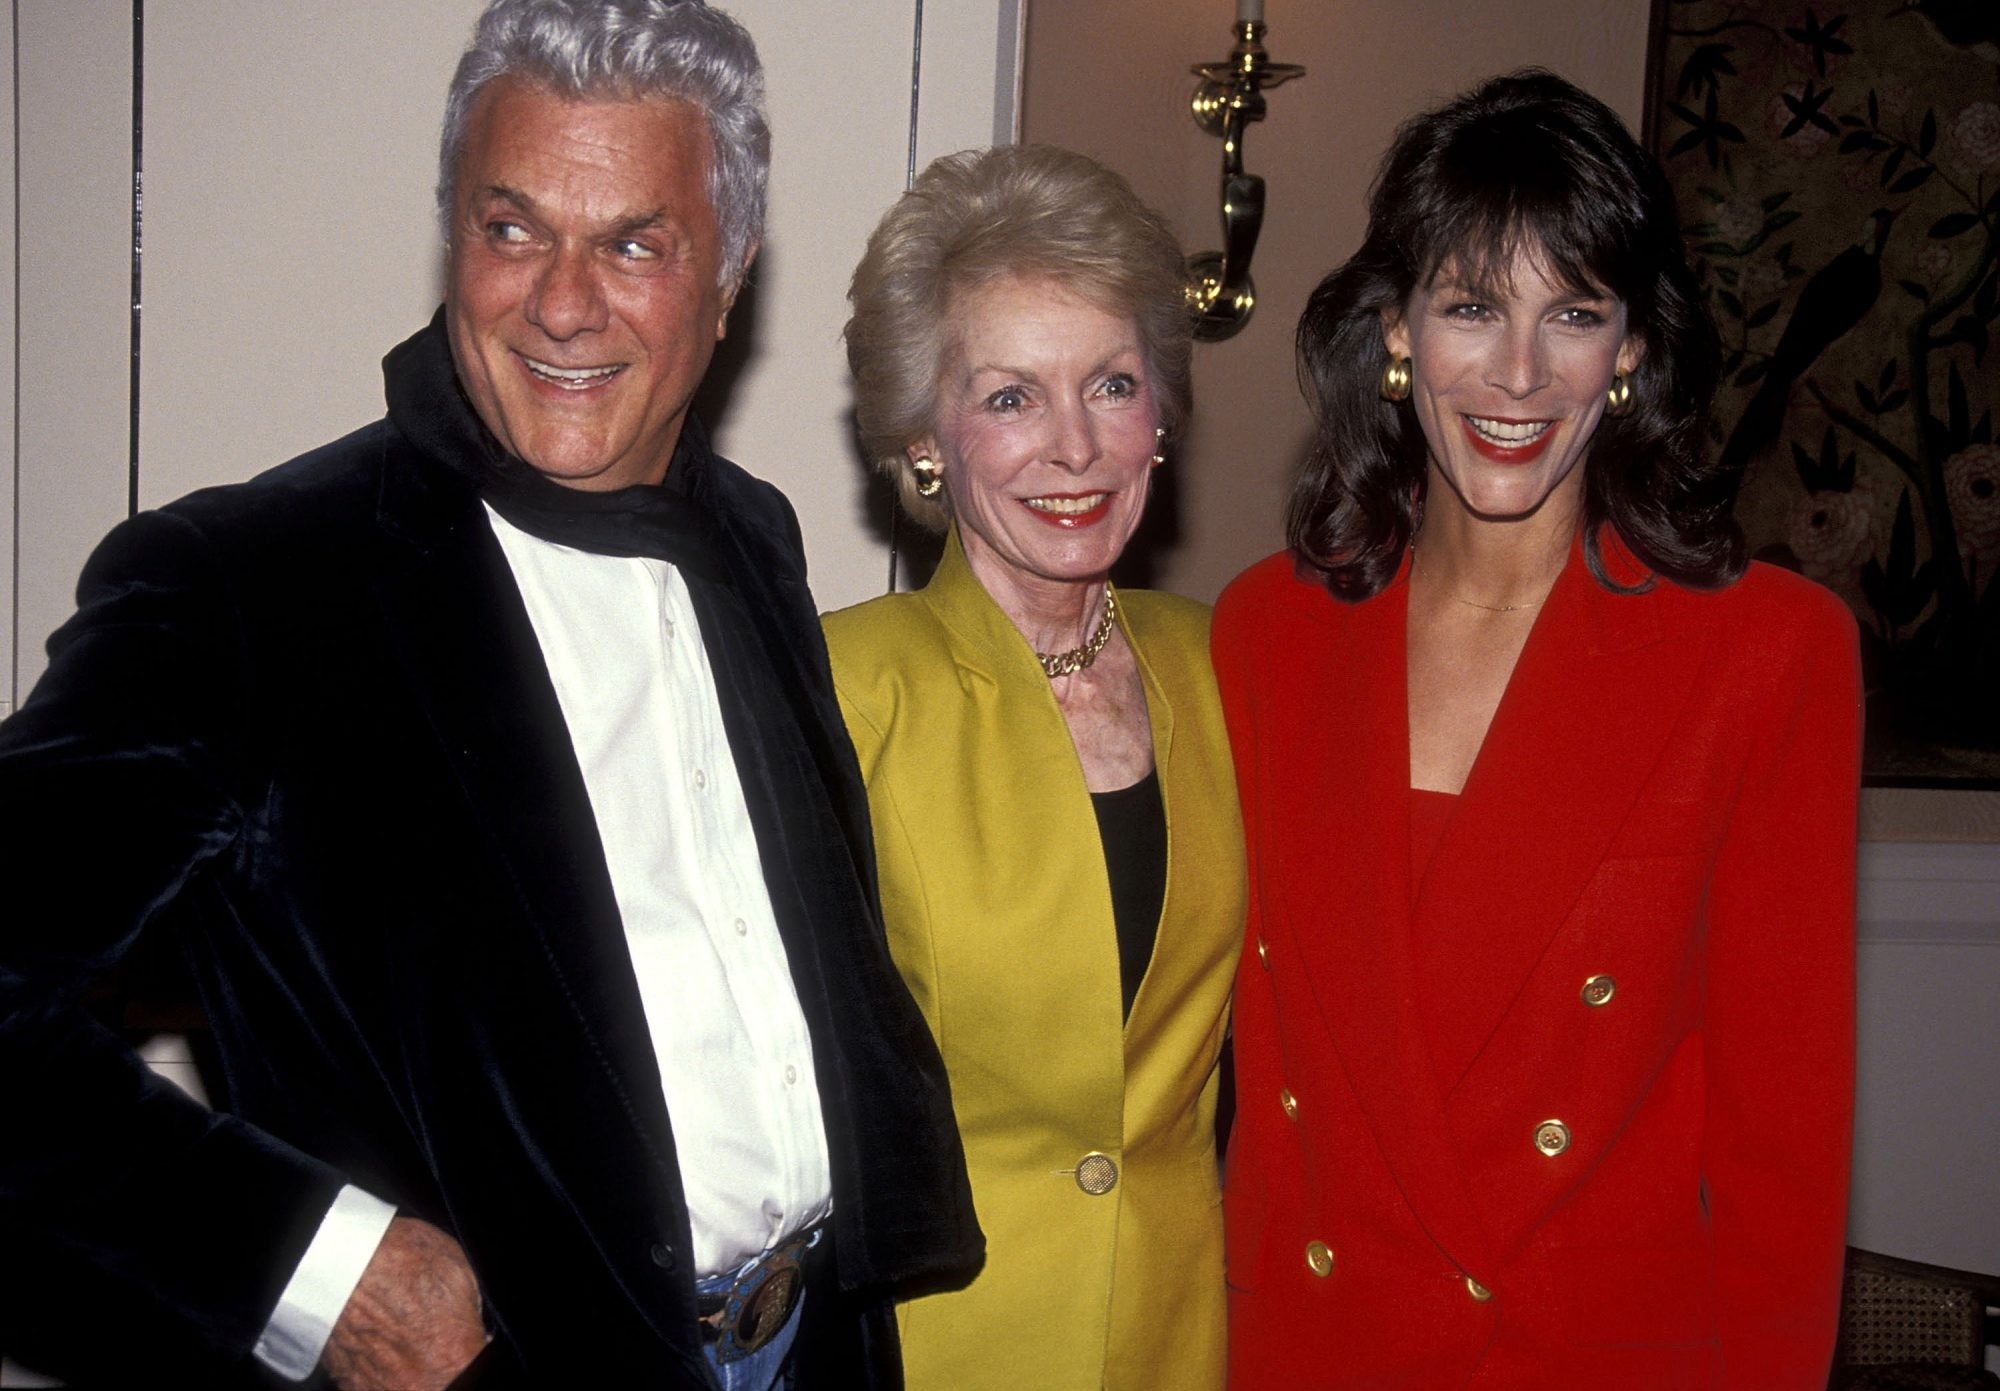 Tony Curtis, Janet Leigh and Jamie Lee Curtis